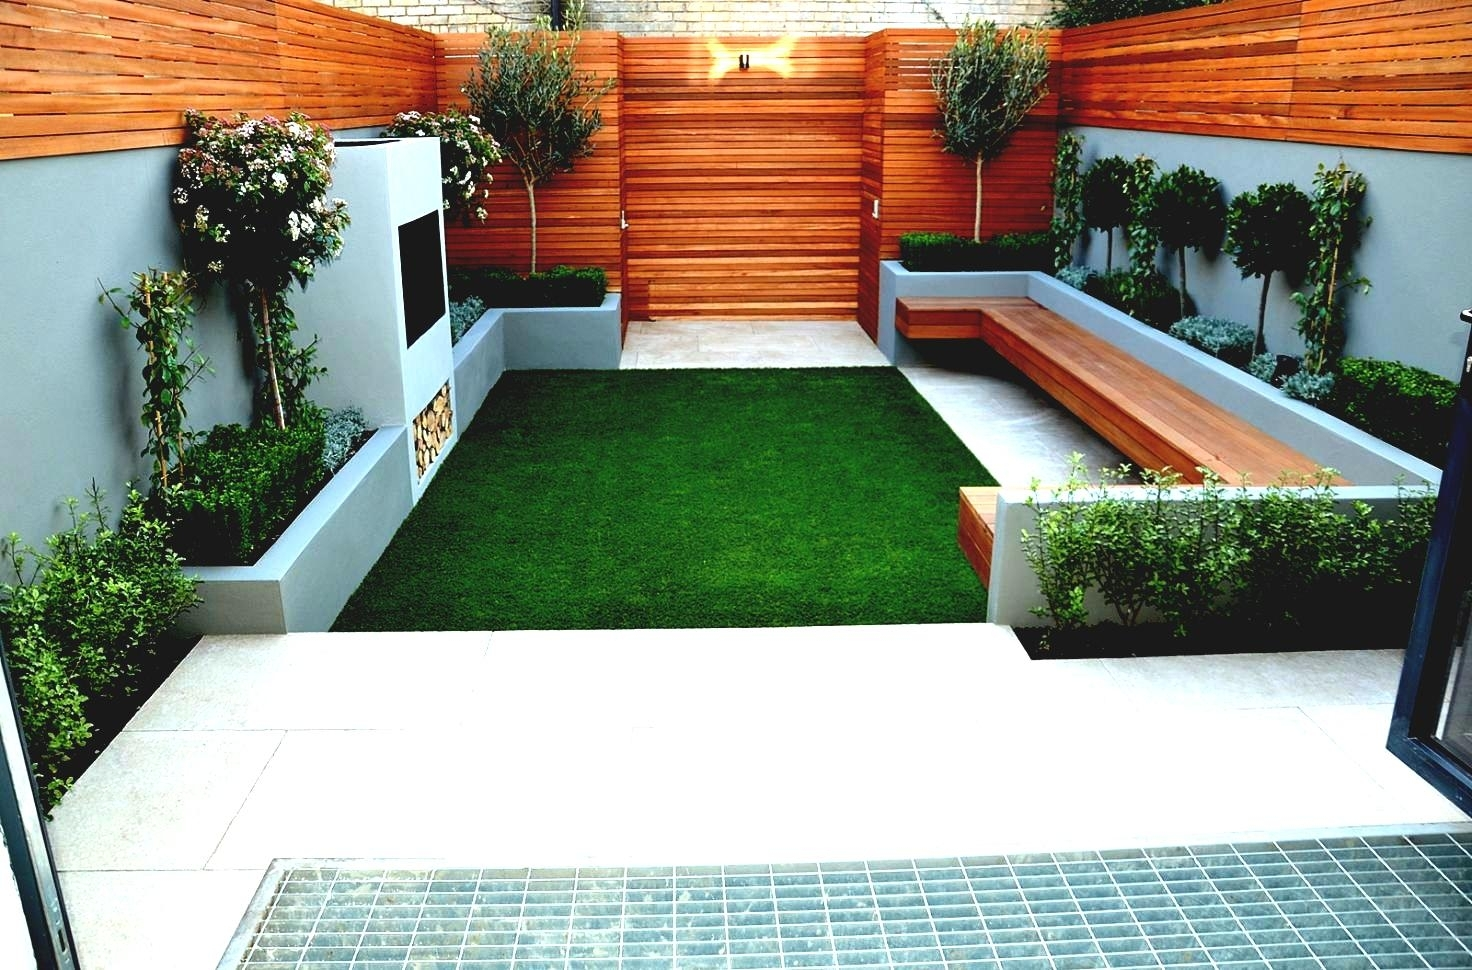 Paving Ideas For Small Back Gardens - Garden Design